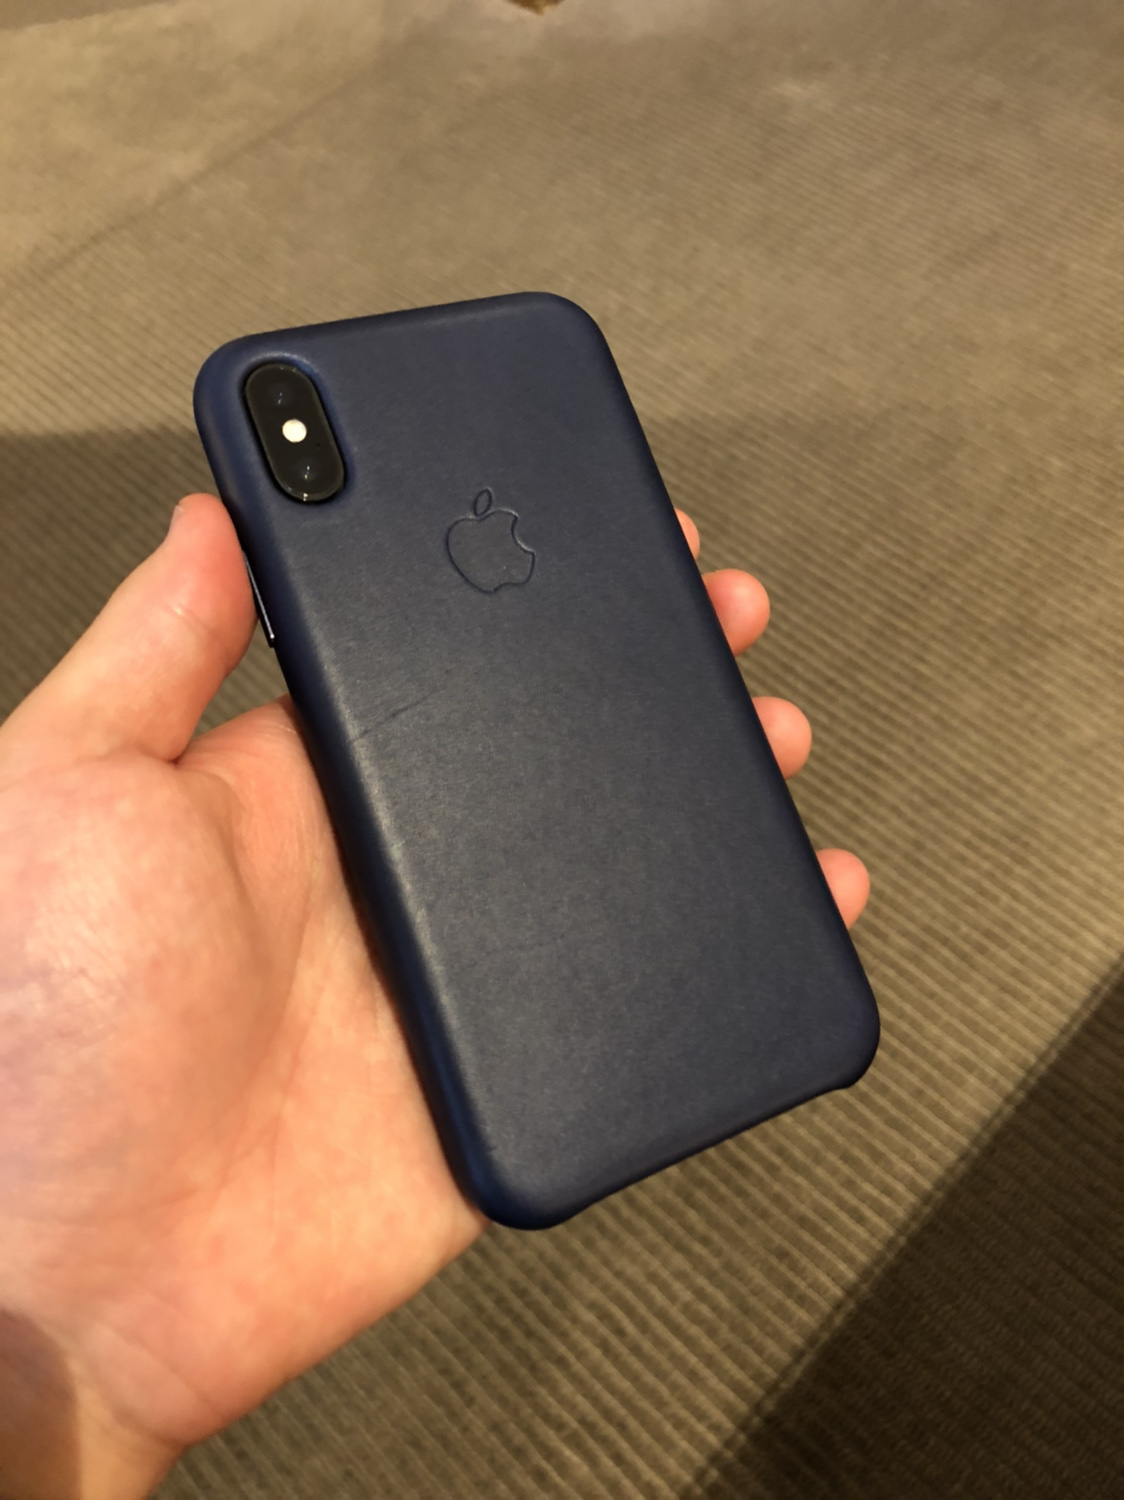 cheaper d5b61 aca68 The best cases and accessories for iPhone X! - Page 23 - iPhone ...